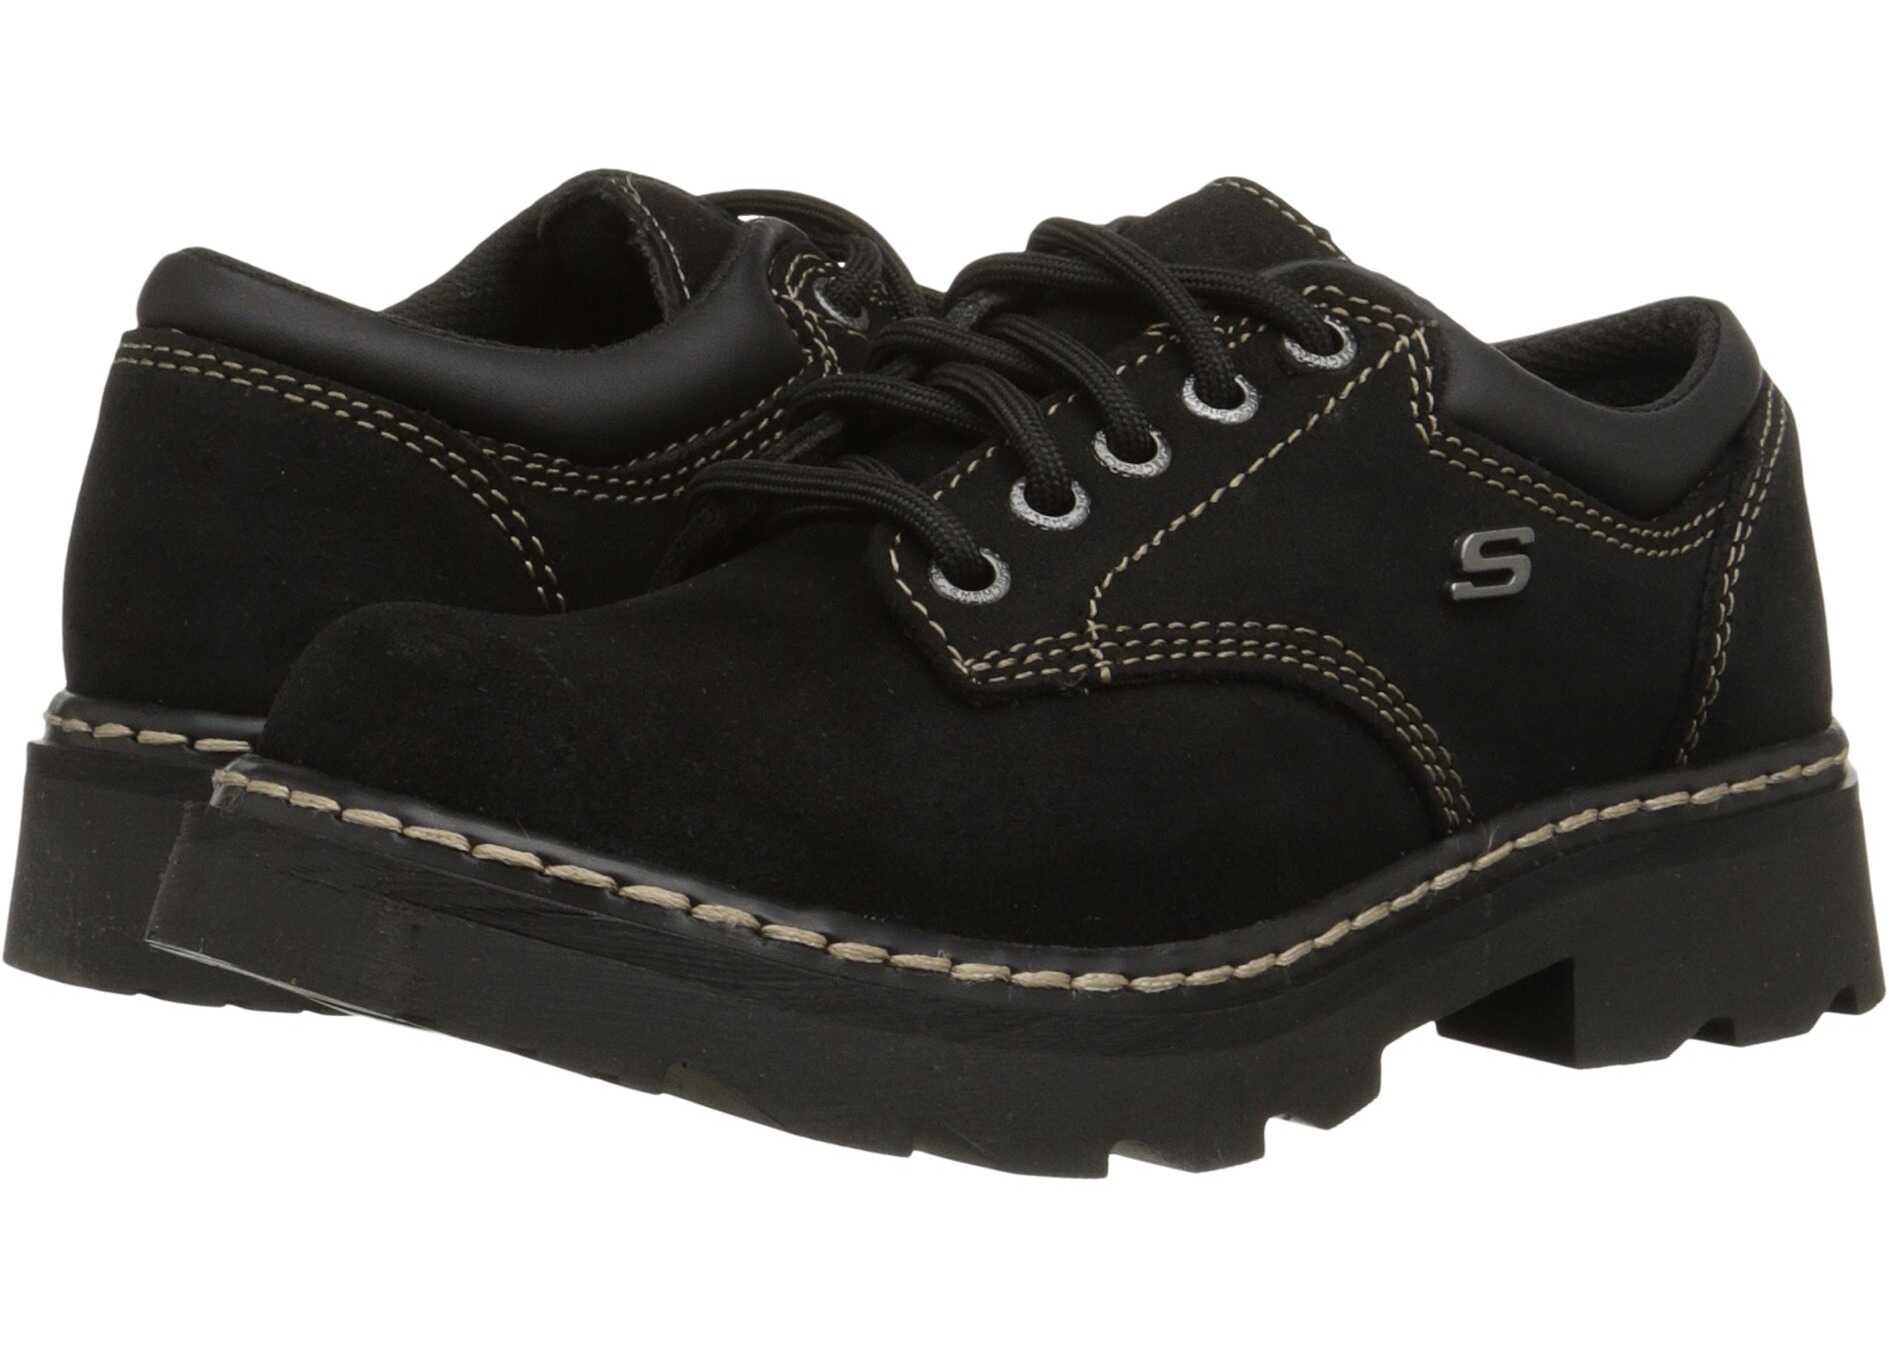 SKECHERS Parties - Mate Black Scuff Resistant Leather